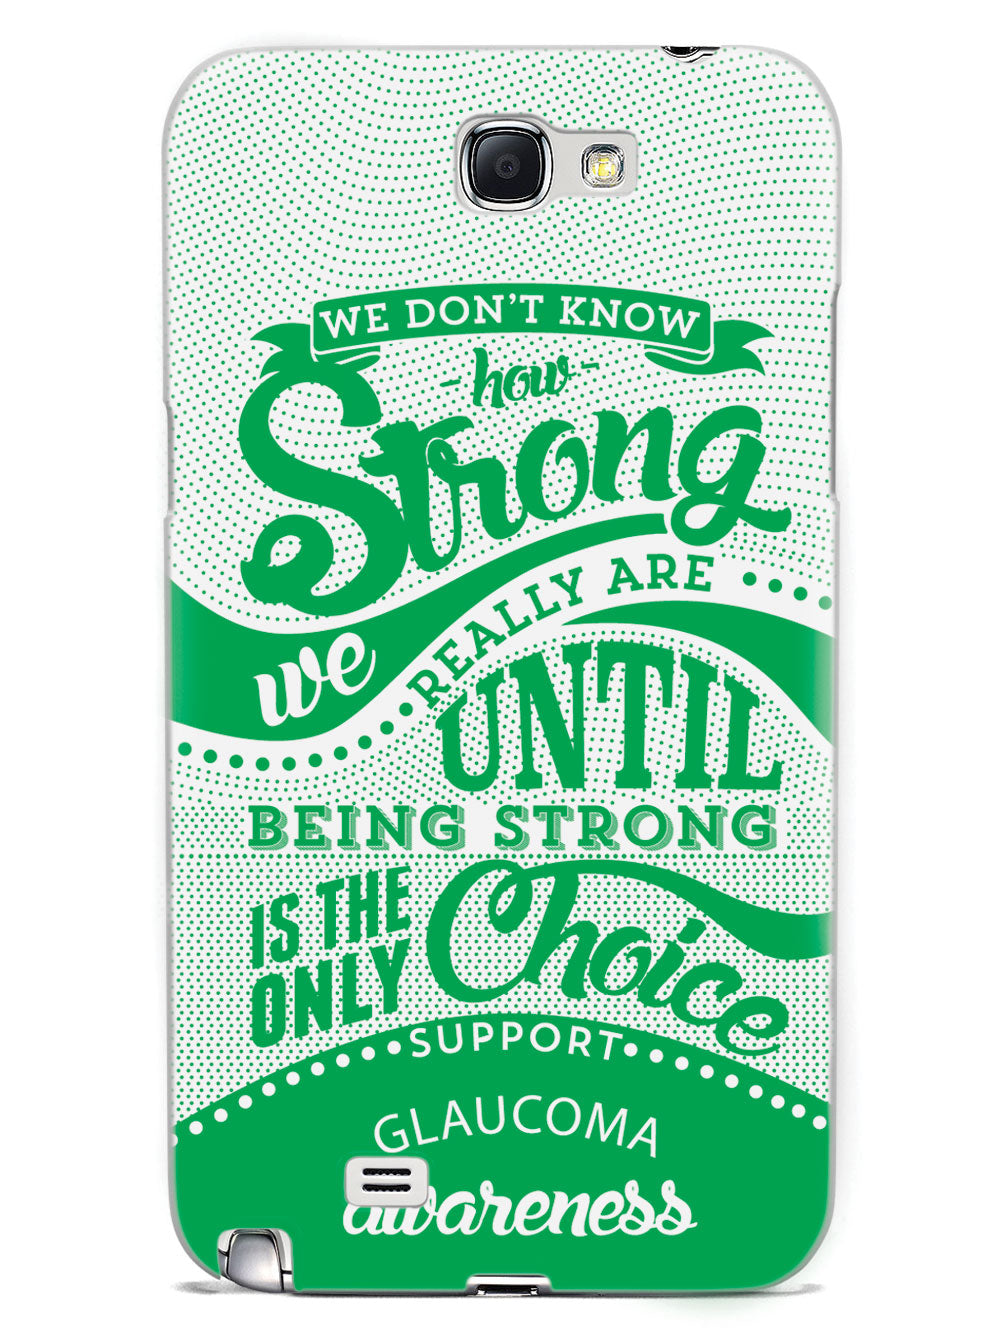 Glaucoma Awareness - How Strong Case